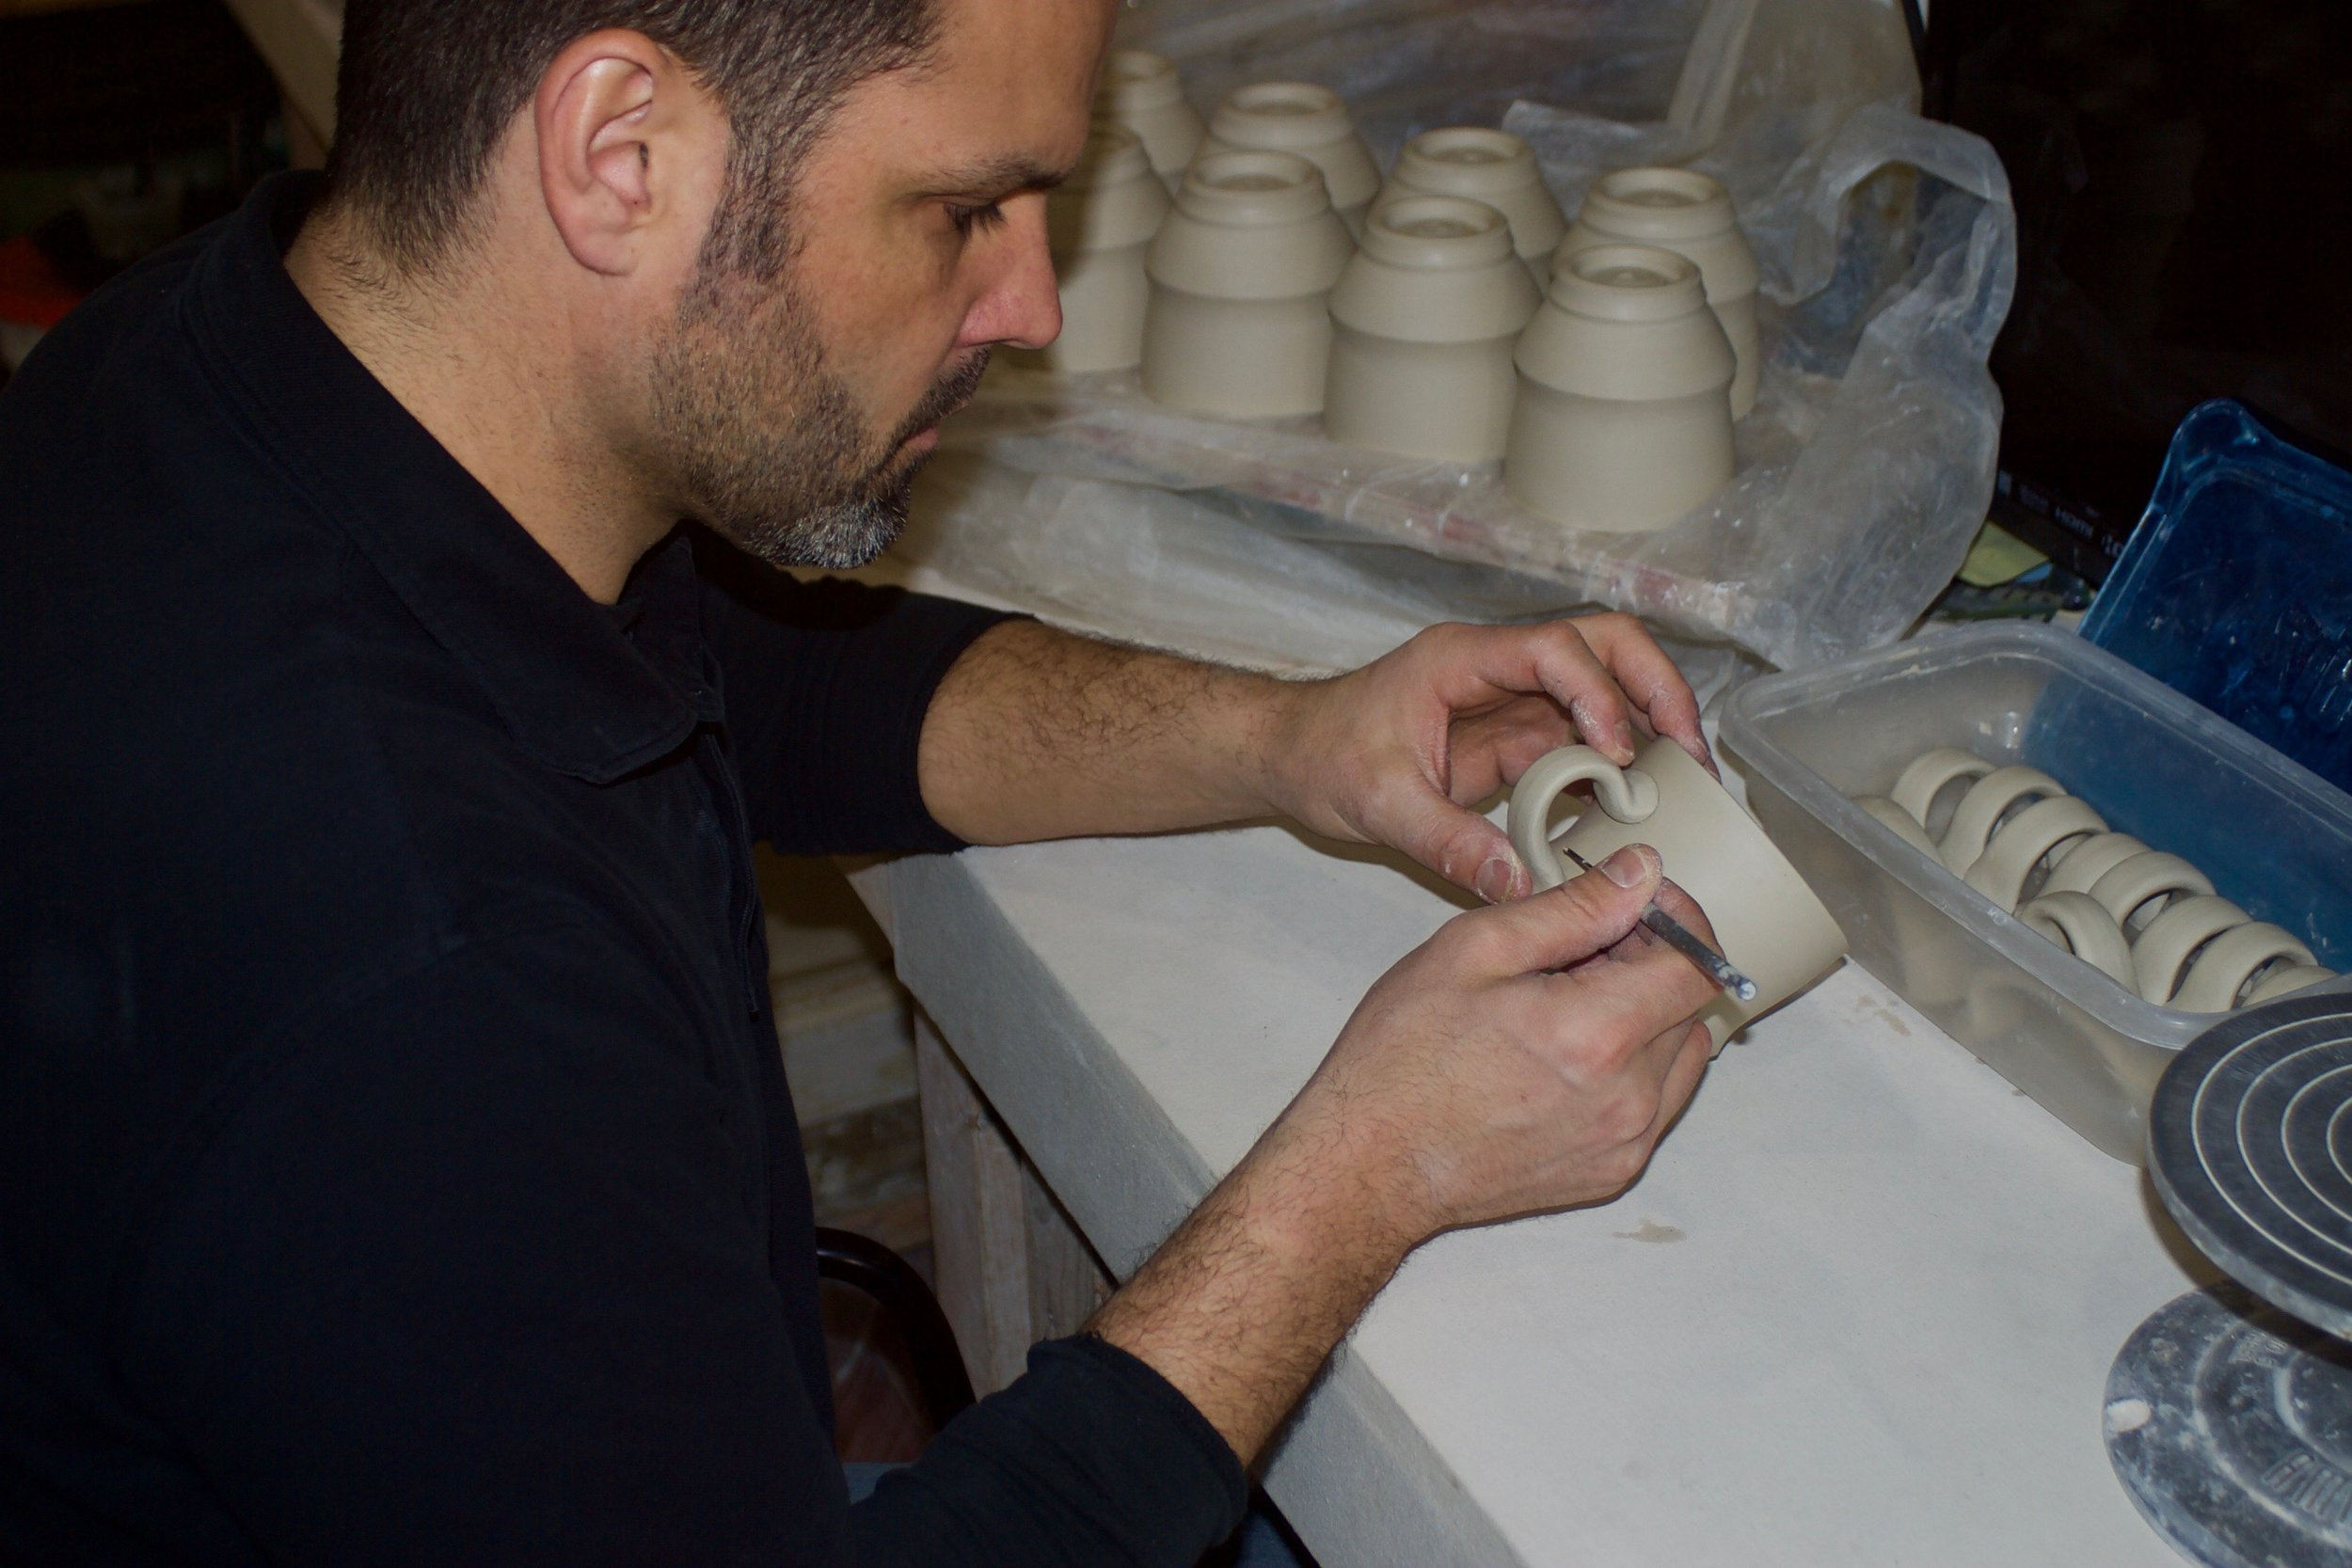 Ryan J. Greenheck - Greenheck Ceramics Studio2019 N. 33rd Street, Philadelphia, PA 19121www.ryanjgreenheck.comRyan received his Master of Fine Arts degree from SUNY College of Ceramics at Alfred University in 2004. He also received a Bachelor of Fine Arts degree as well as a Bachelor of Science degree from The University of Wisconsin-Stout in 2002. He has participated in numerous national juried exhibitions and invitational shows since 2000. His work is represented in many galleries throughout the country. Ryan currently is a practicing studio potter and Lecturer at the University of Pennsylvania.